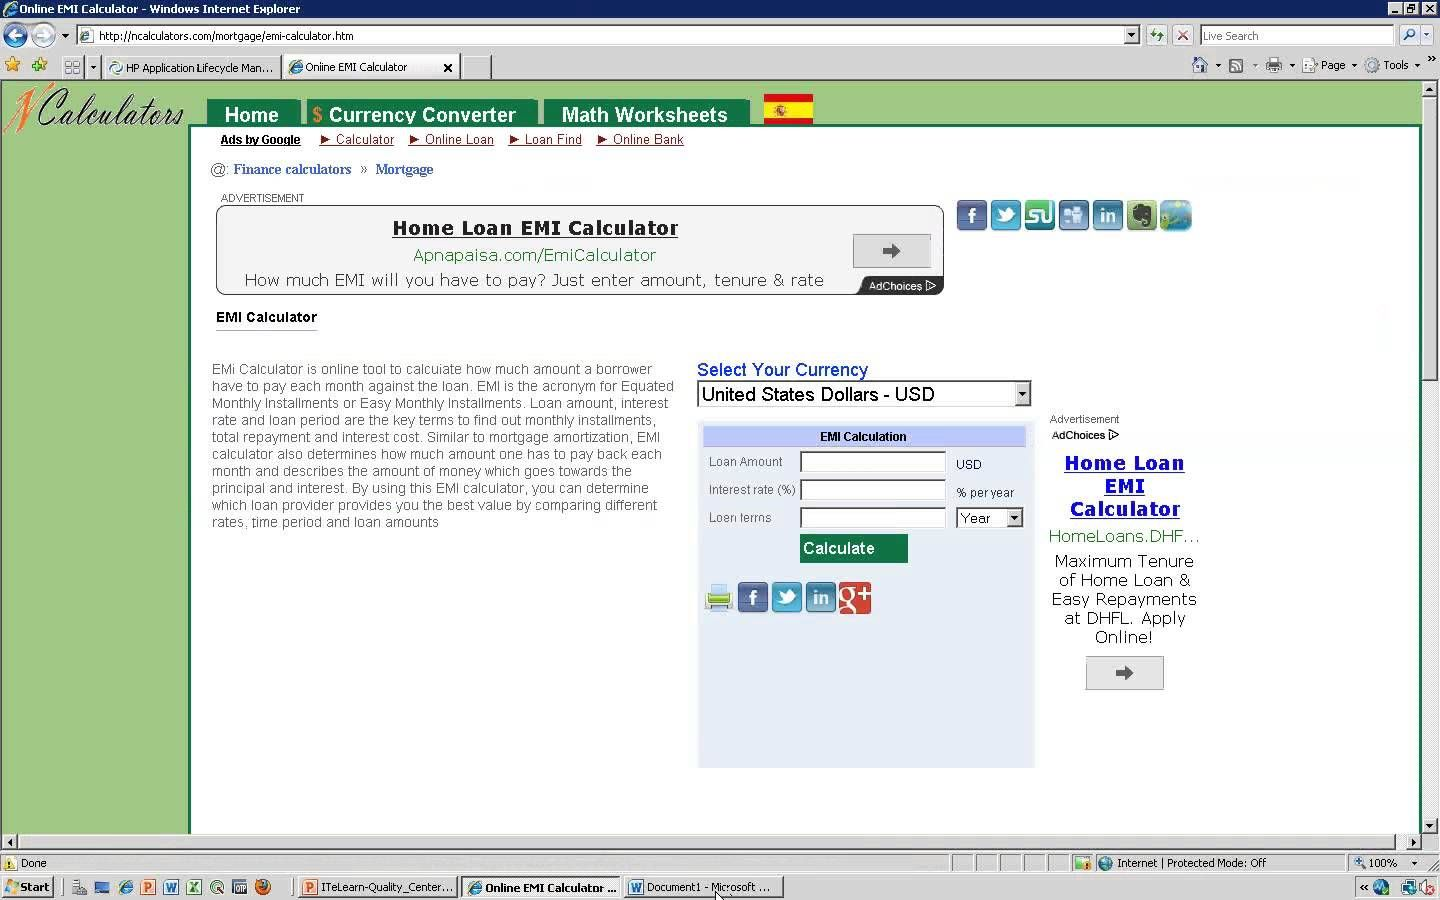 Itelearn Quality Center Tutorial Day 01 Qc Tutorial Video